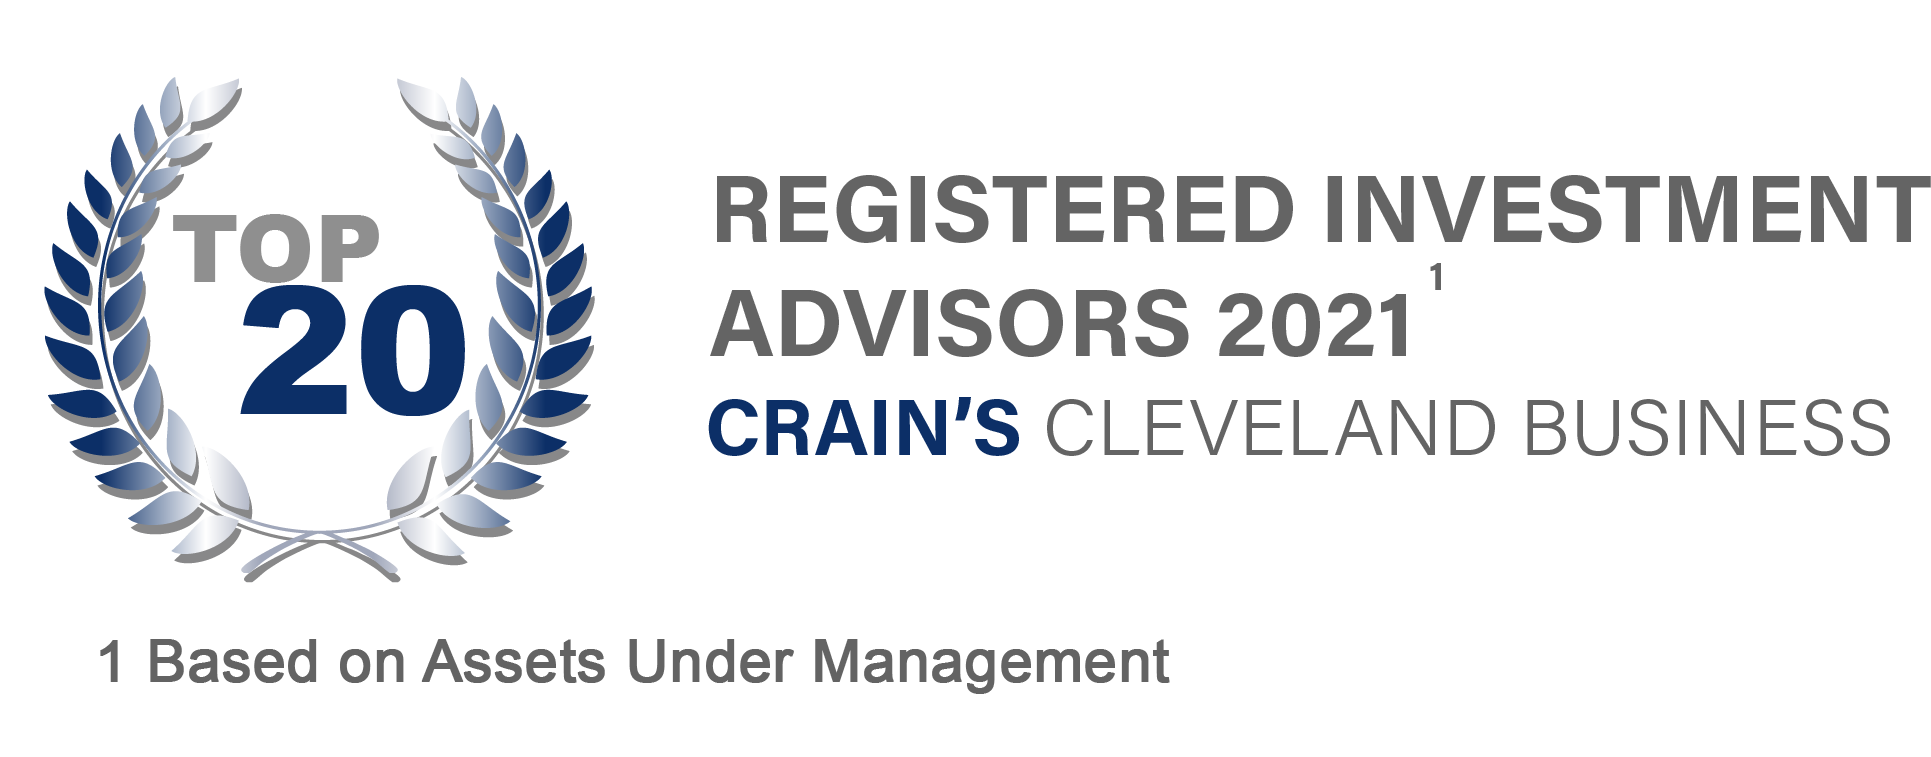 Lineweaver Wealth Advisors enters the top 20 in the Crains 2021 List of Registered Investment Advisers